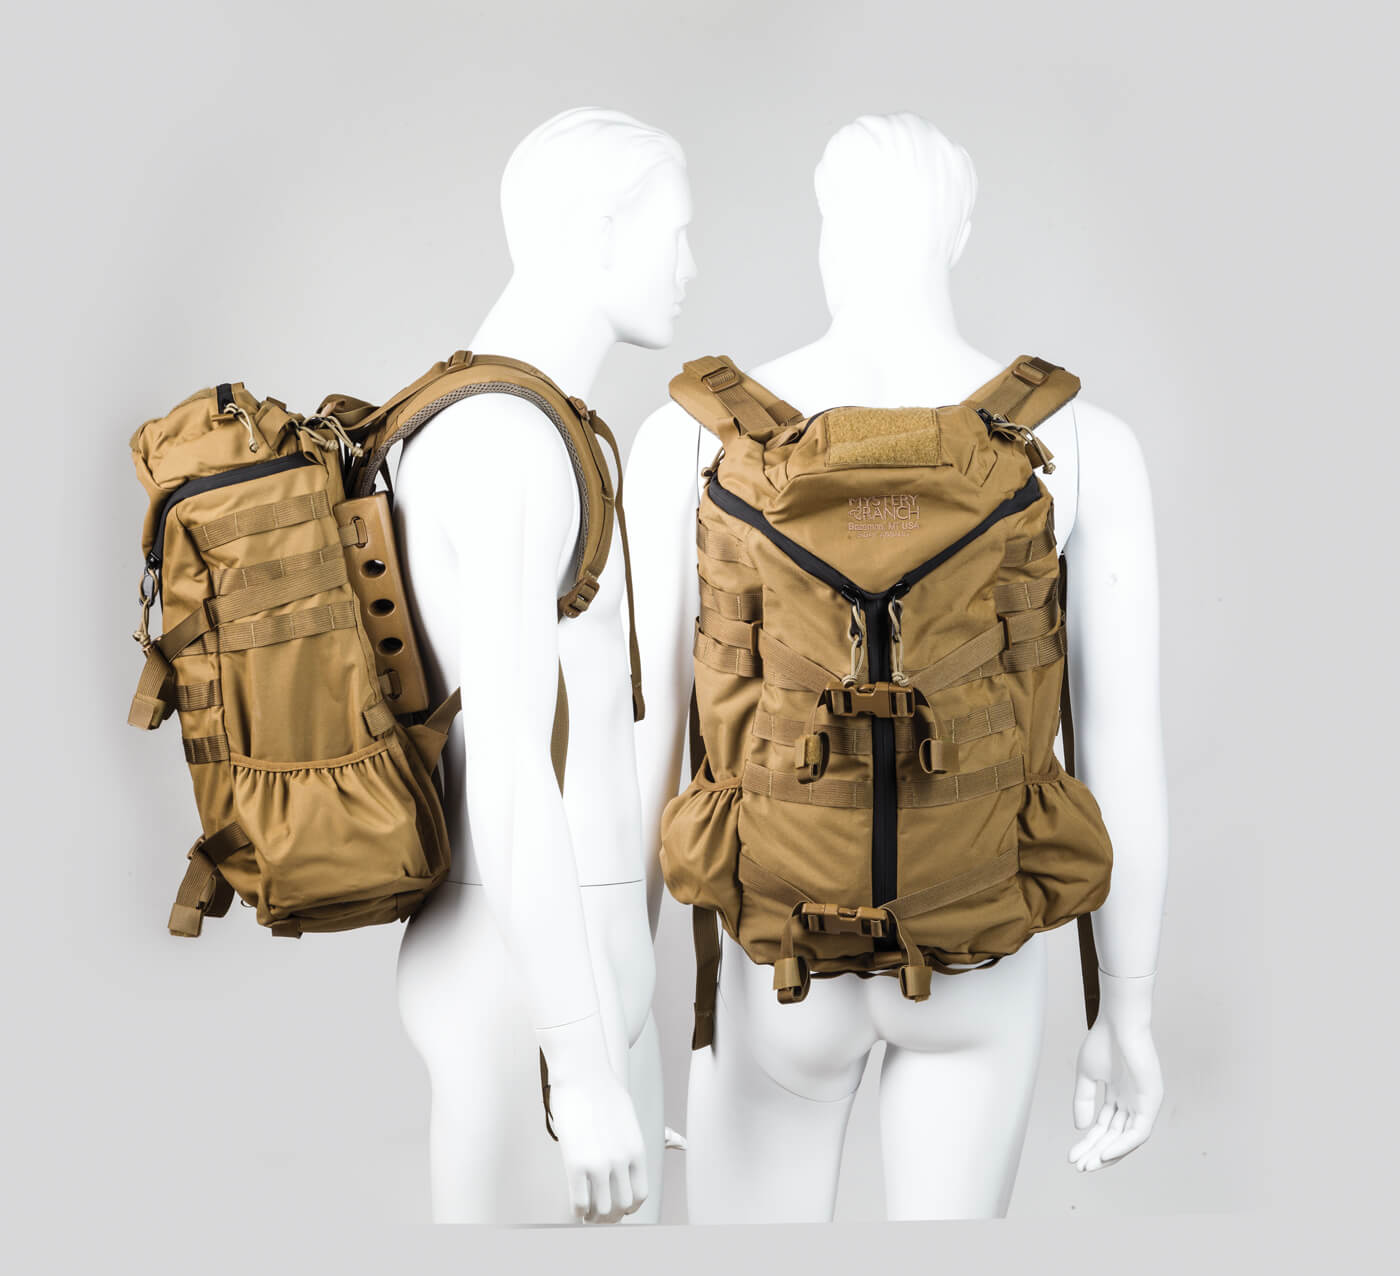 Mil Sack: Tactical Backpacks for the Weathered Trail - TREAD Magazine